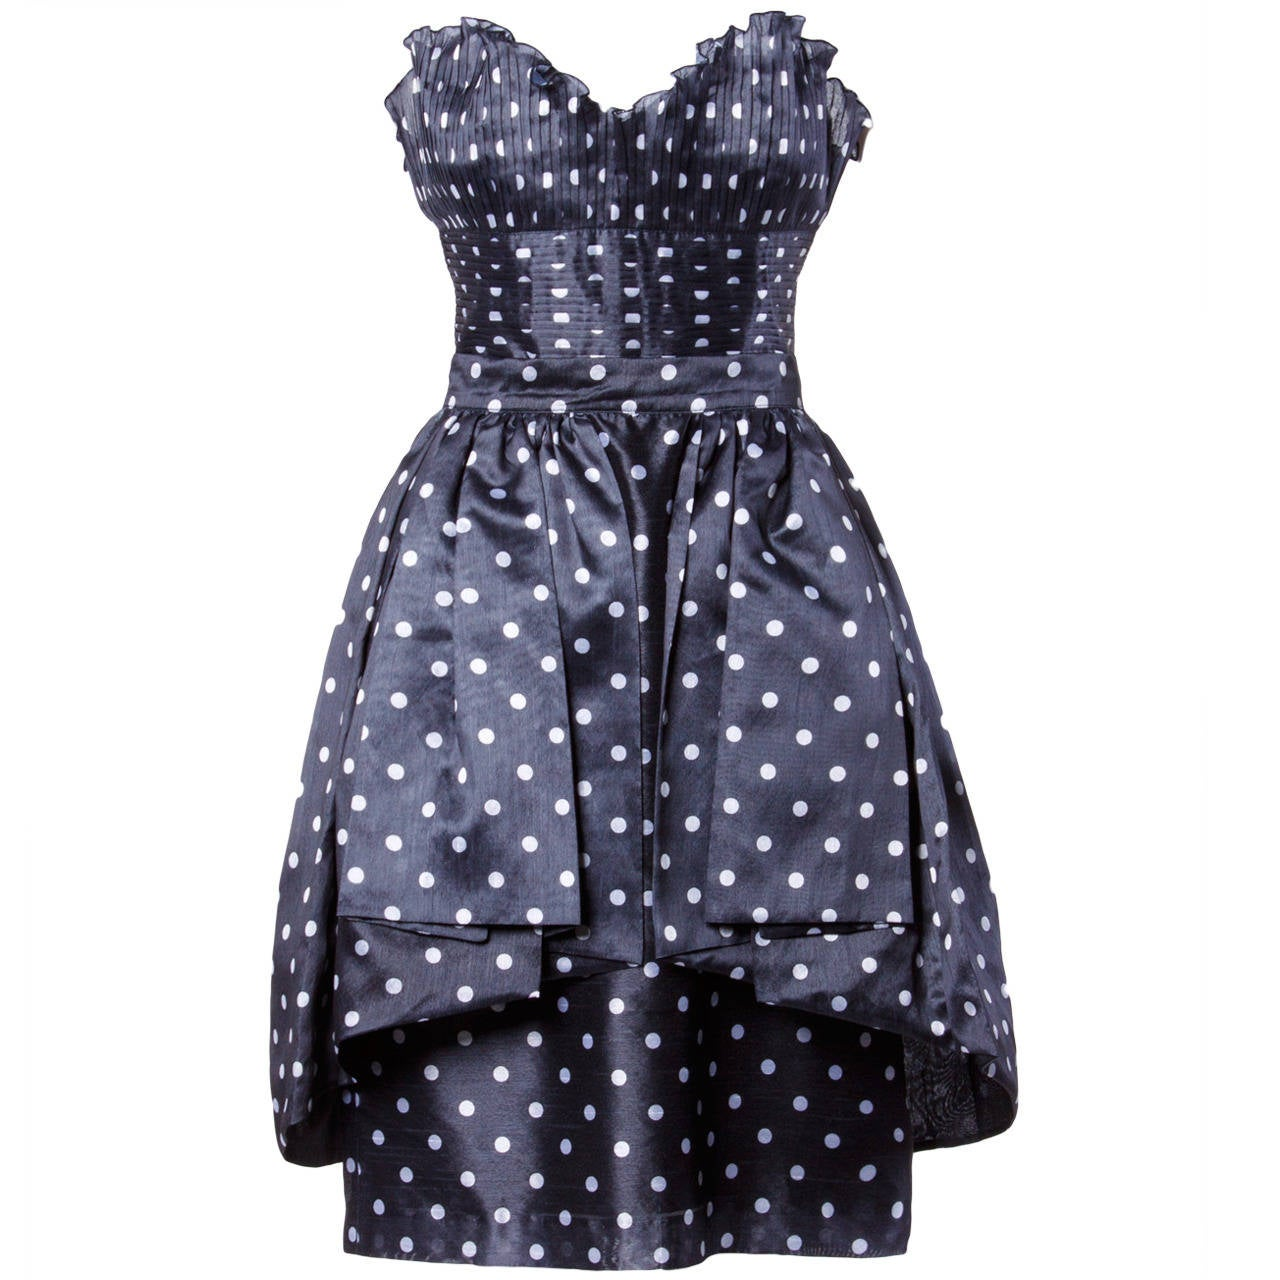 Loris Azzaro Vintage Polka Dot Bustier Top + Skirt 2-Piece Dress Ensemble For Sale